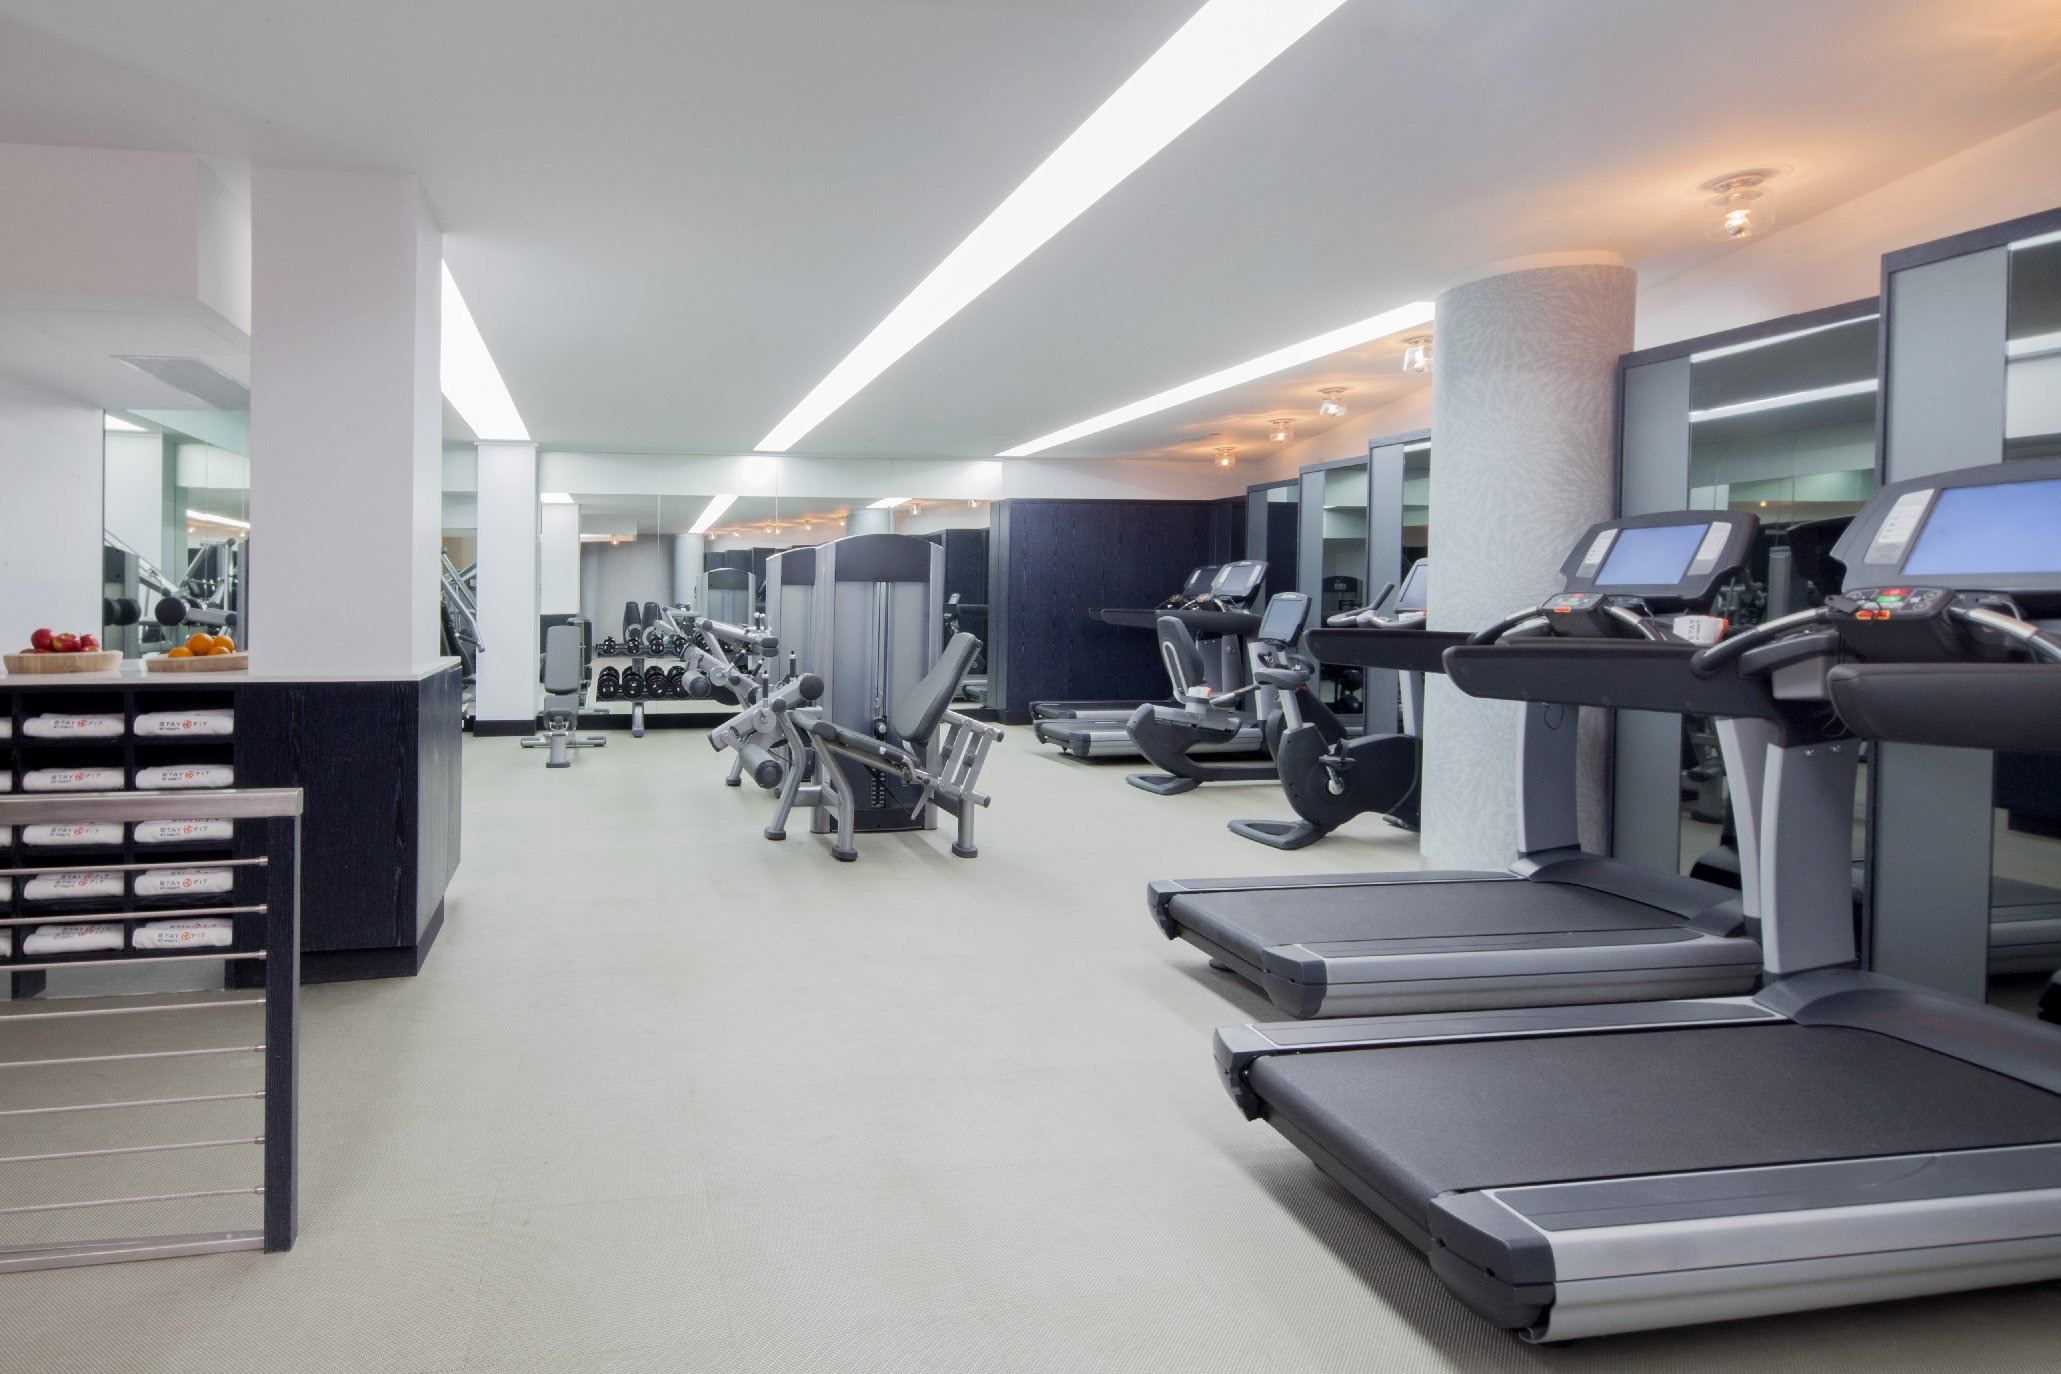 https://www.hotelsbyday.com/_data/default-hotel_image/1/9936/fitness-studio.jpg